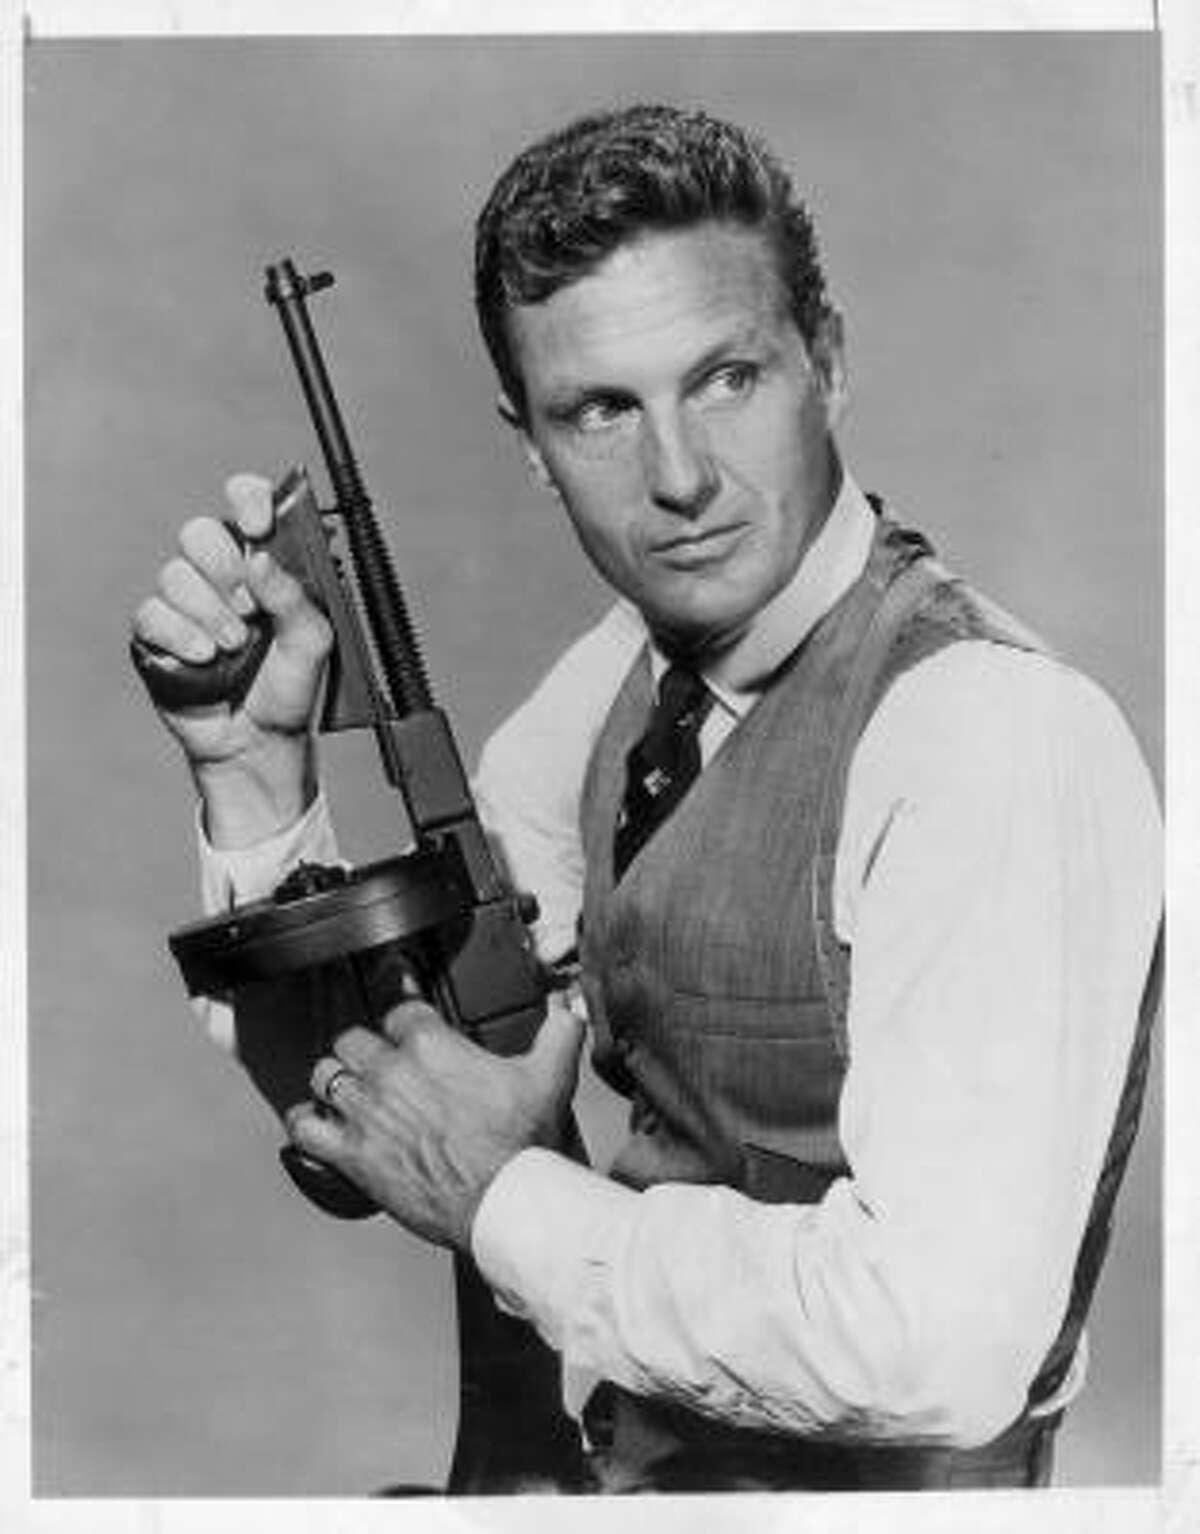 Though 3-D was known to most audiences as a viewing format for comics, the release of Bwana Devil (1954), starring Robert Stack of The Untouchables fame, marked the golden era of 3-D in film. 3-D would largely remain associated with film from then on.